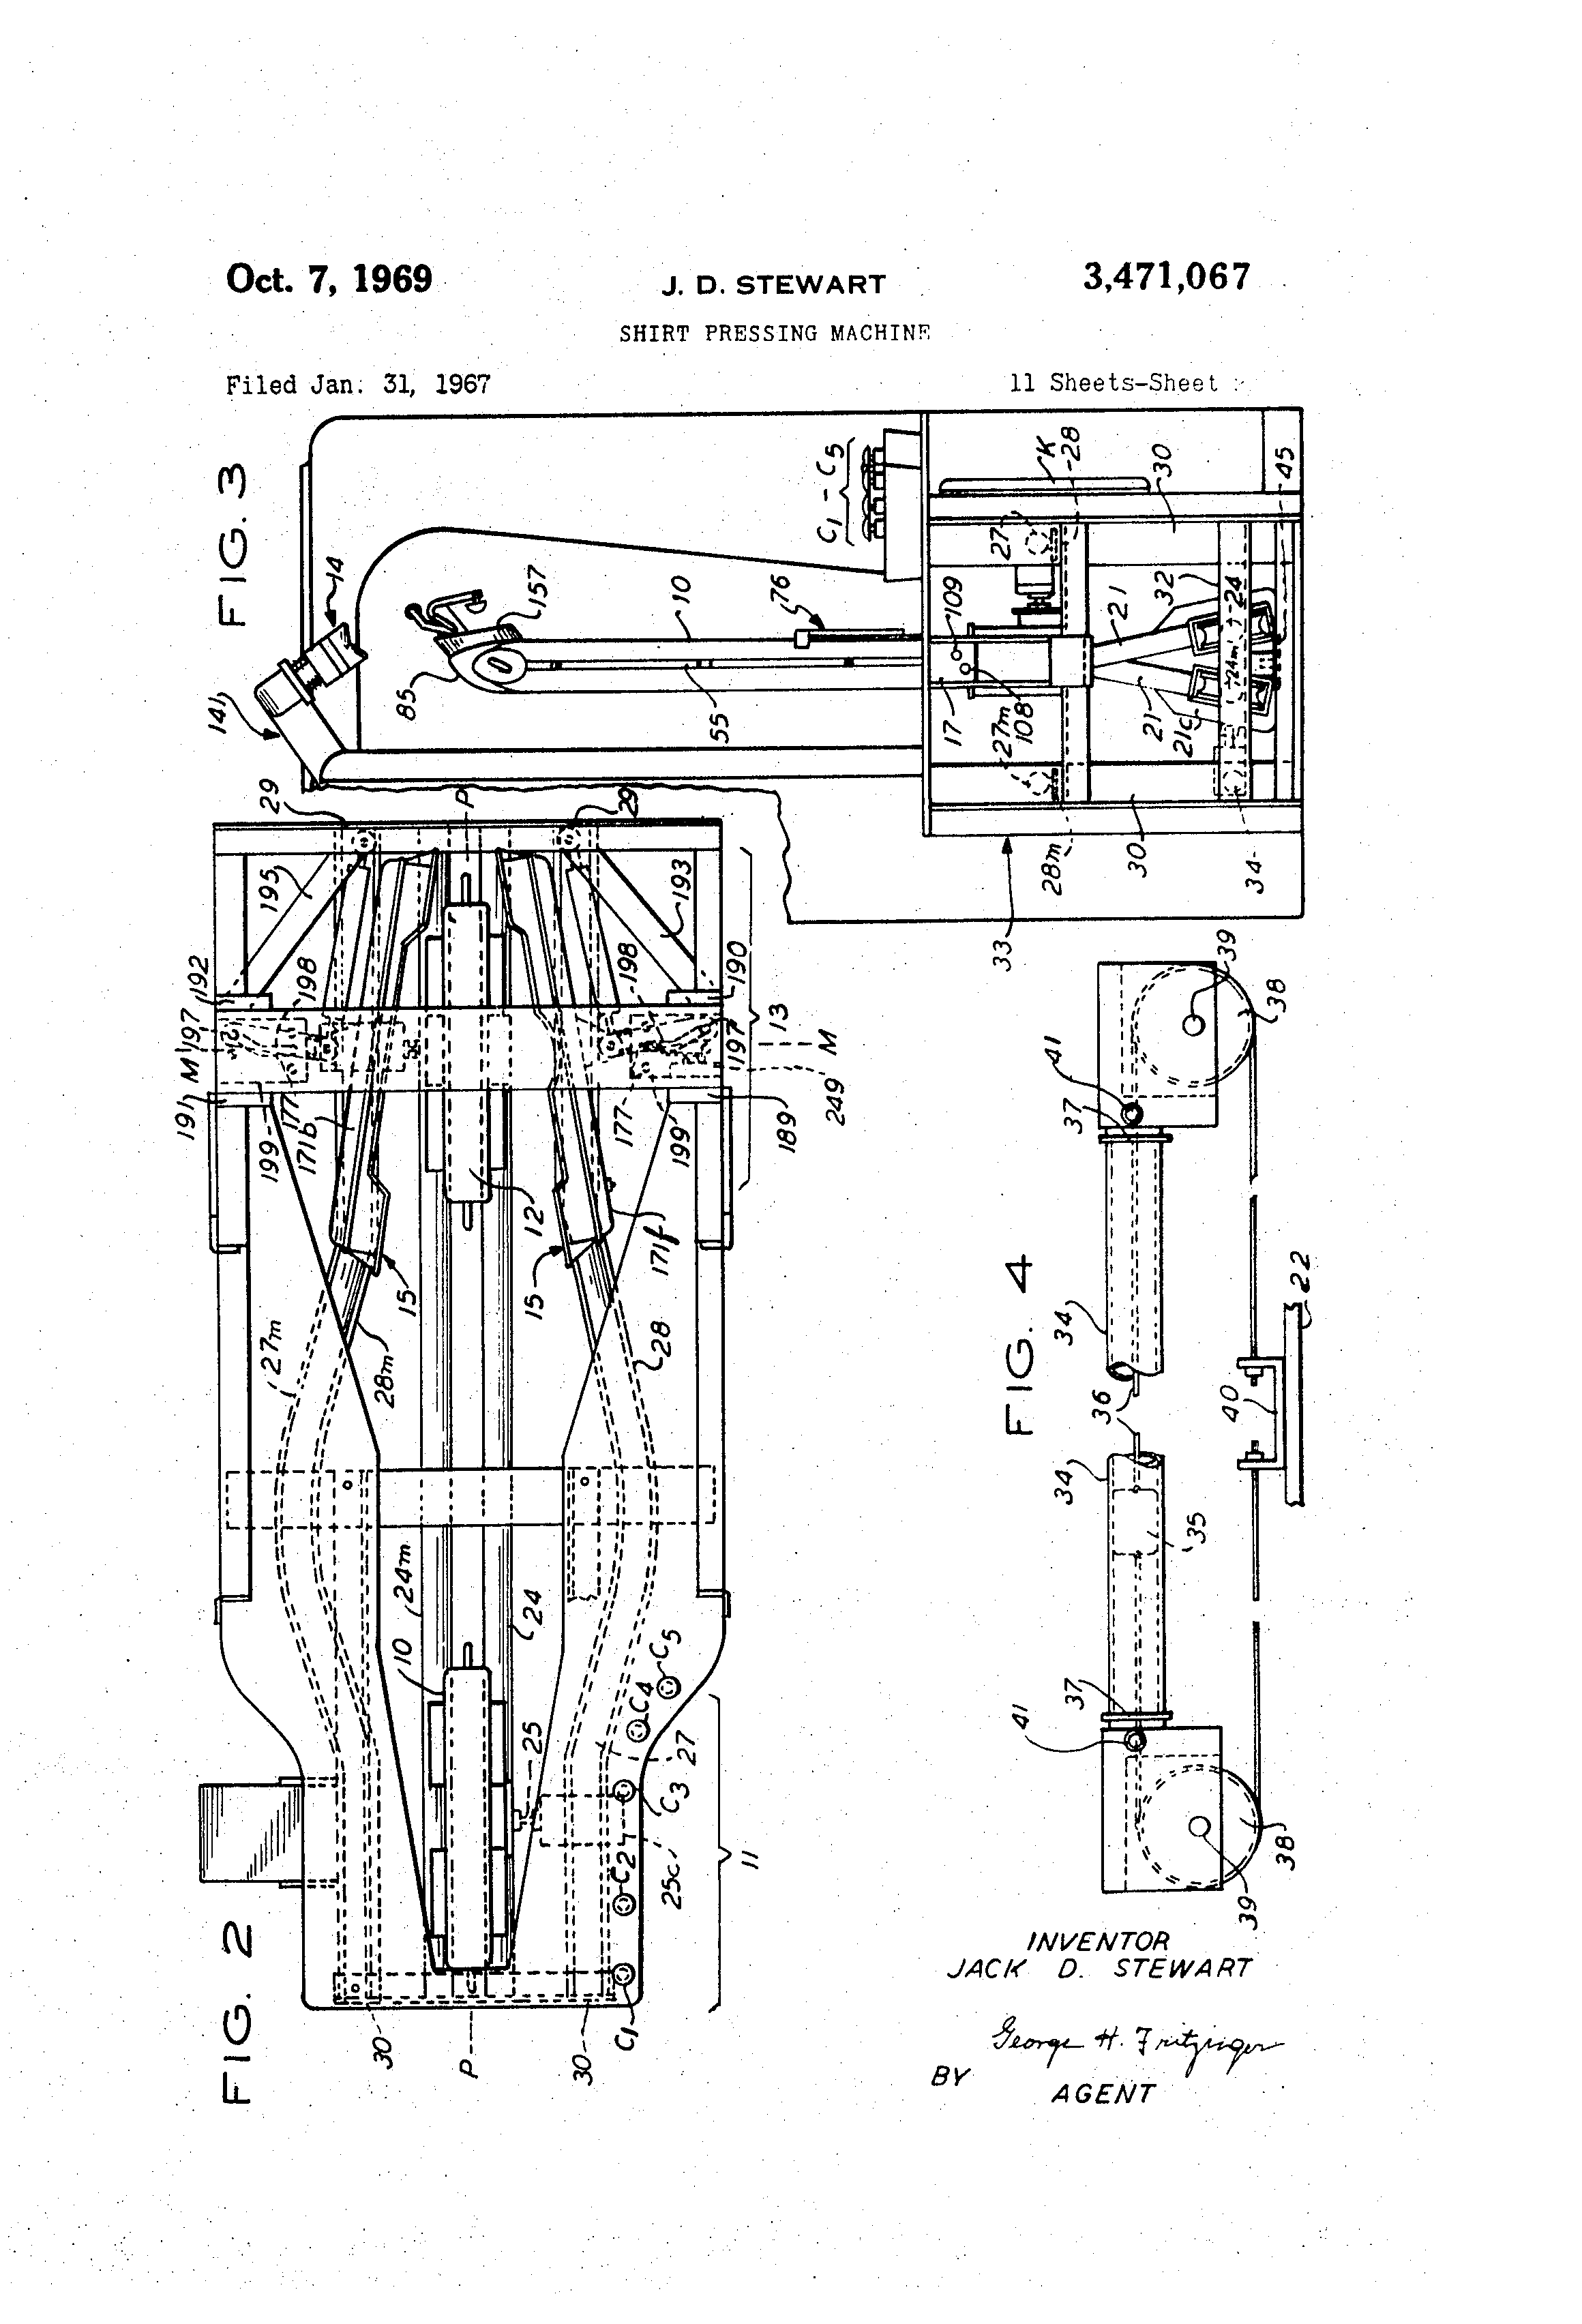 US3471067 1 patent us3471067 shirt pressing machine google patents  at nearapp.co